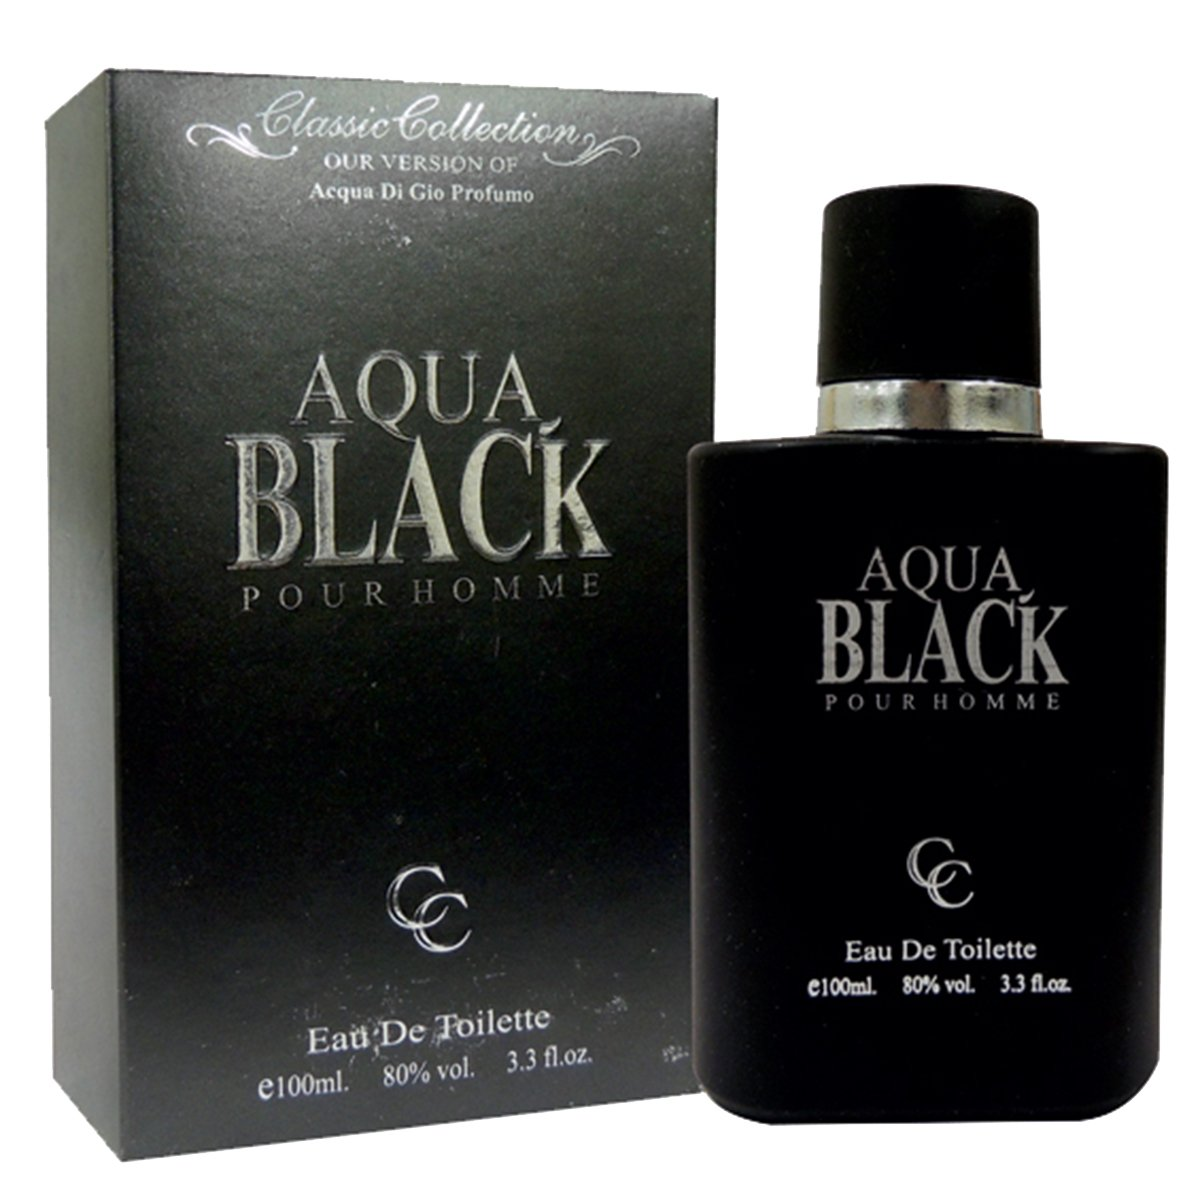 Amazon.com : Aqua Black GIO Profumo Perfume For Him 3.3 oz Eau de Toilette (Imitation) : Beauty